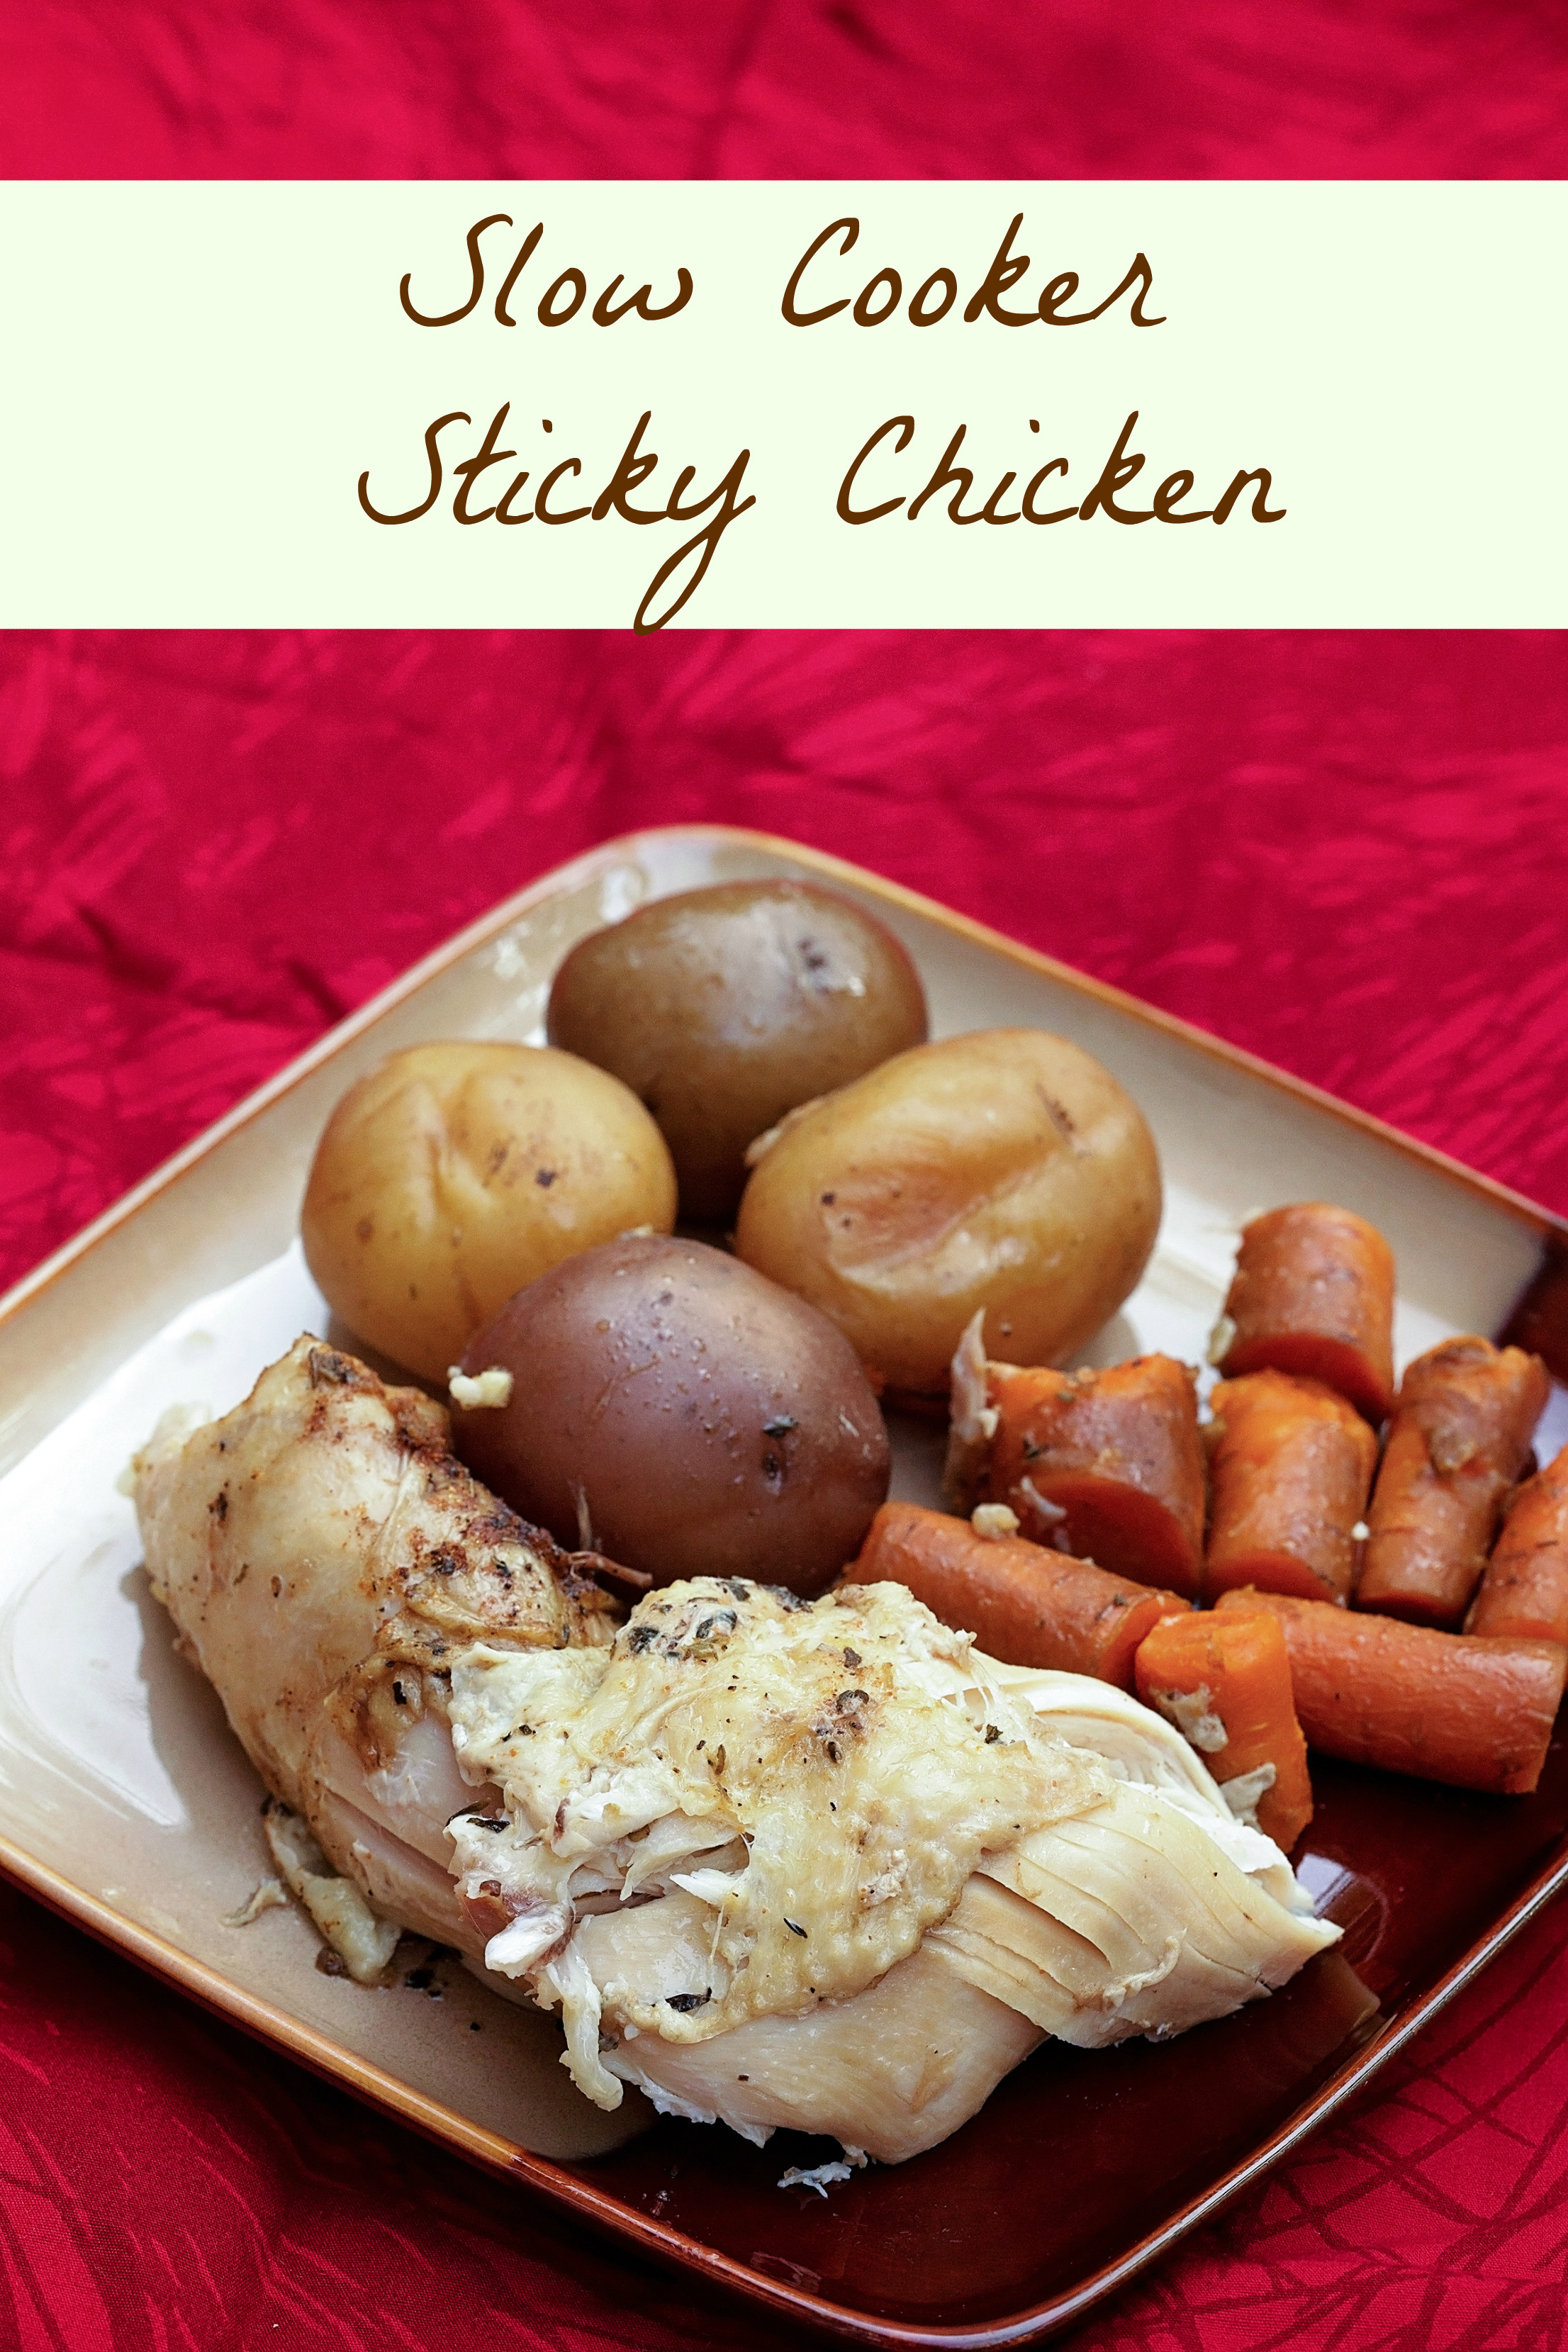 Low Fat Slow Cooker Recipes  Low Fat Slow Cooker Sticky Chicken Recipe SoFabFood